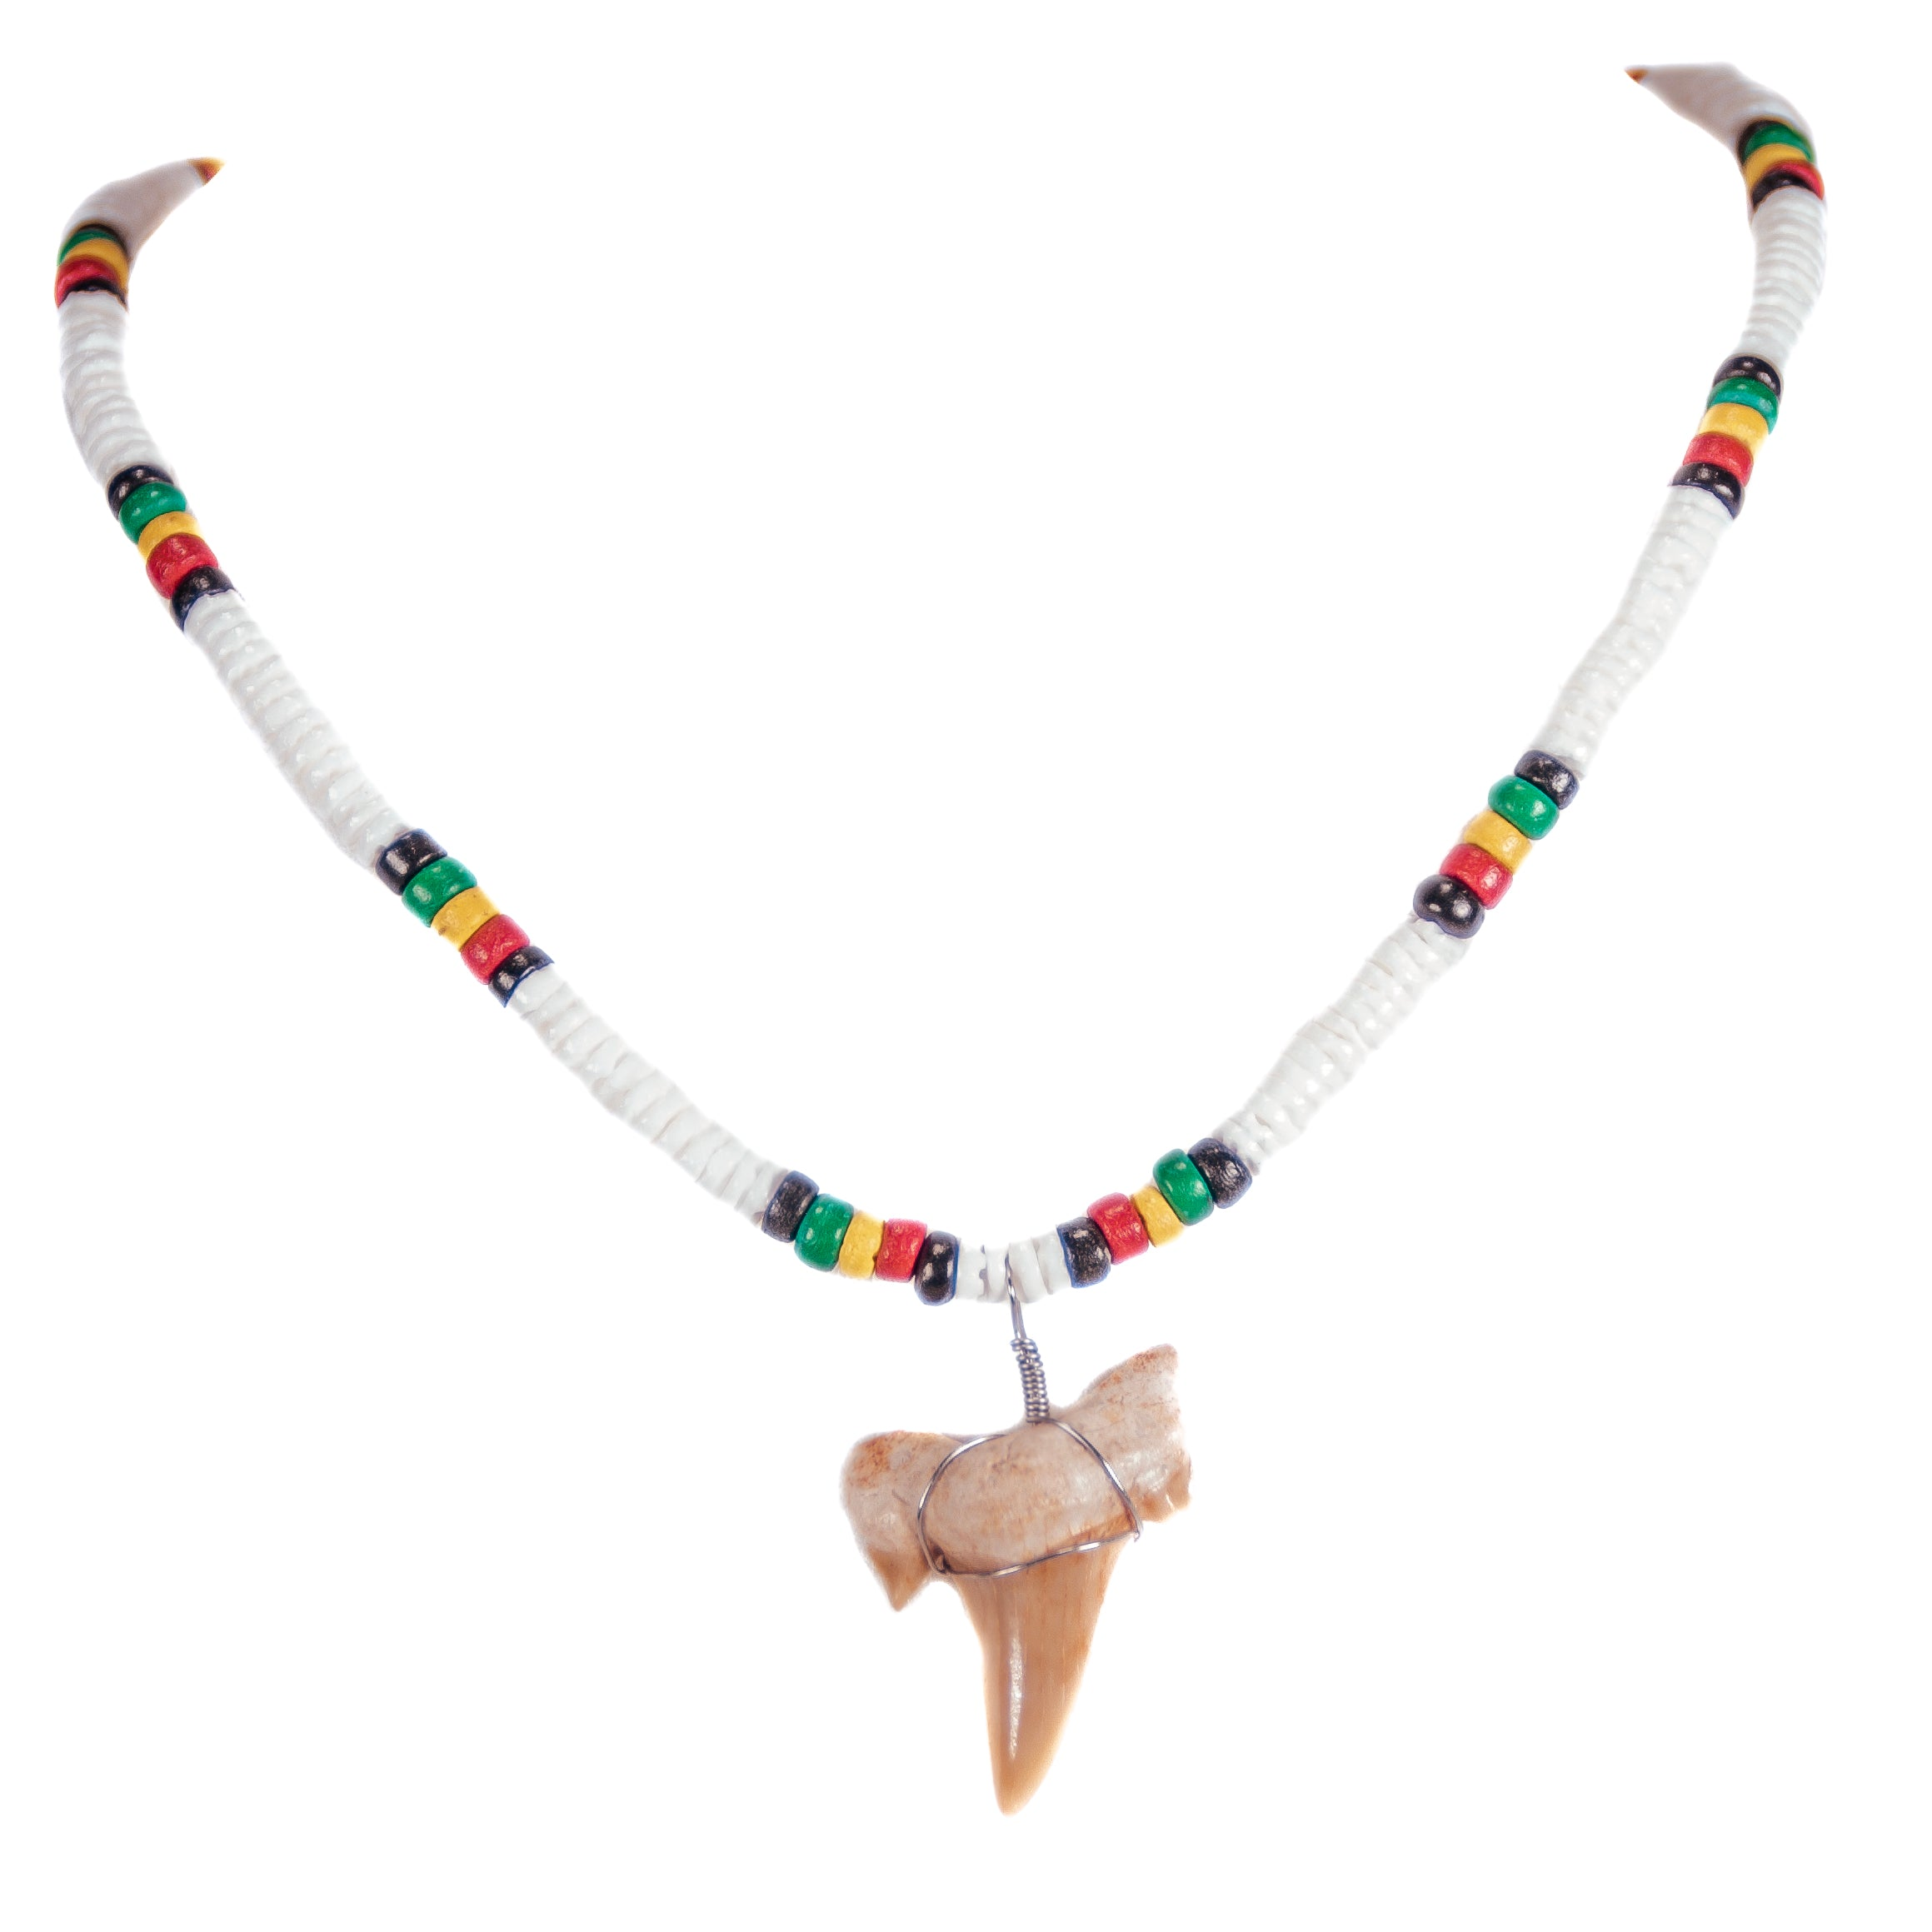 "1¼""+ Shark Tooth Pendant on Puka Shell and Rasta Coconut Beads Necklace"